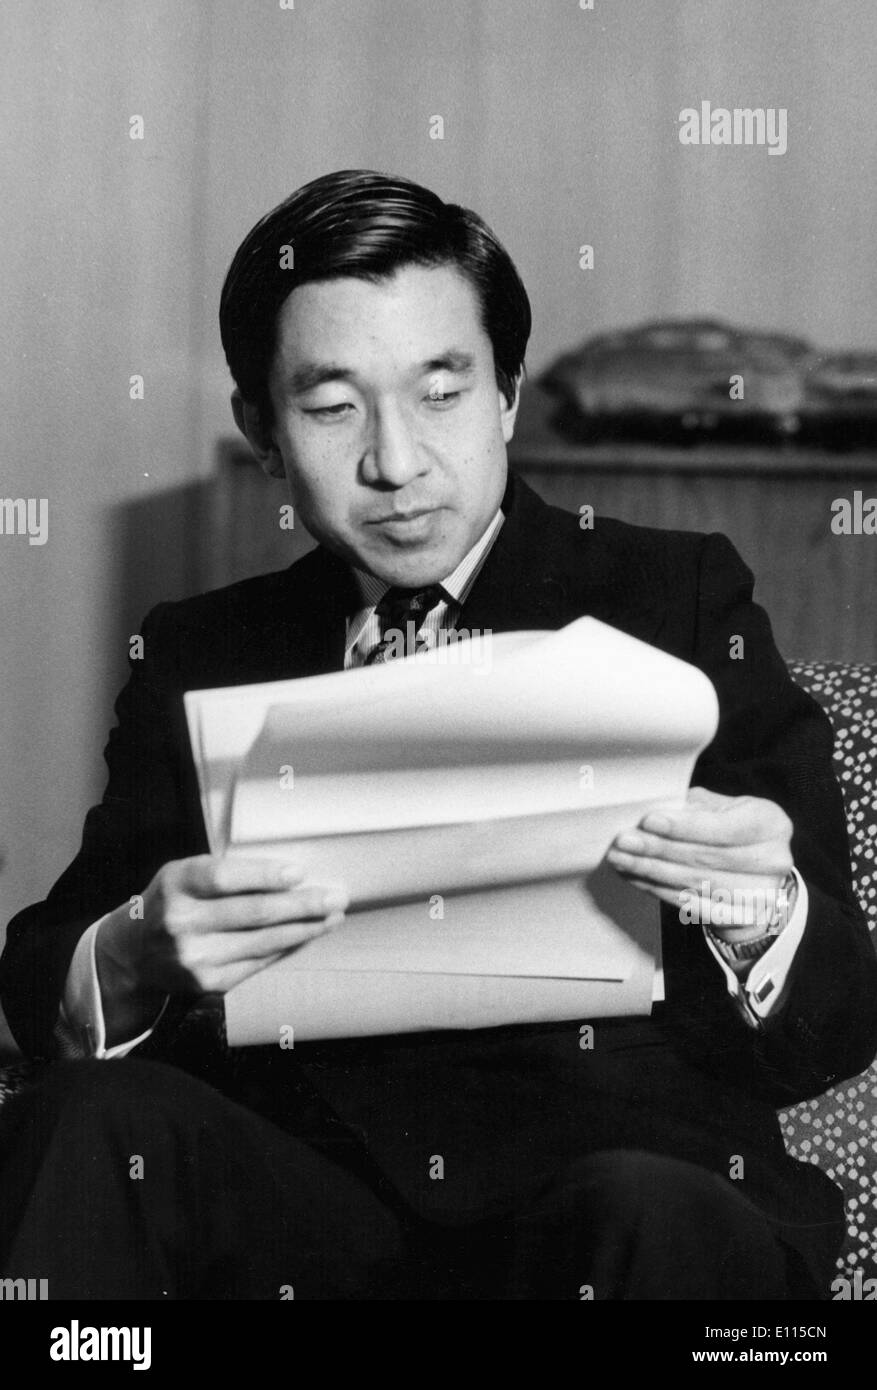 Dec 23, 1975; Tokyo, Japan; Crown PRINCE AKIHITO of Japan, who is 42 on December 23, 1975, is shown studying reports of the Okinawa Expo '75 at his residence Togu Palace in Tokyo, on his brithday. - Stock Image